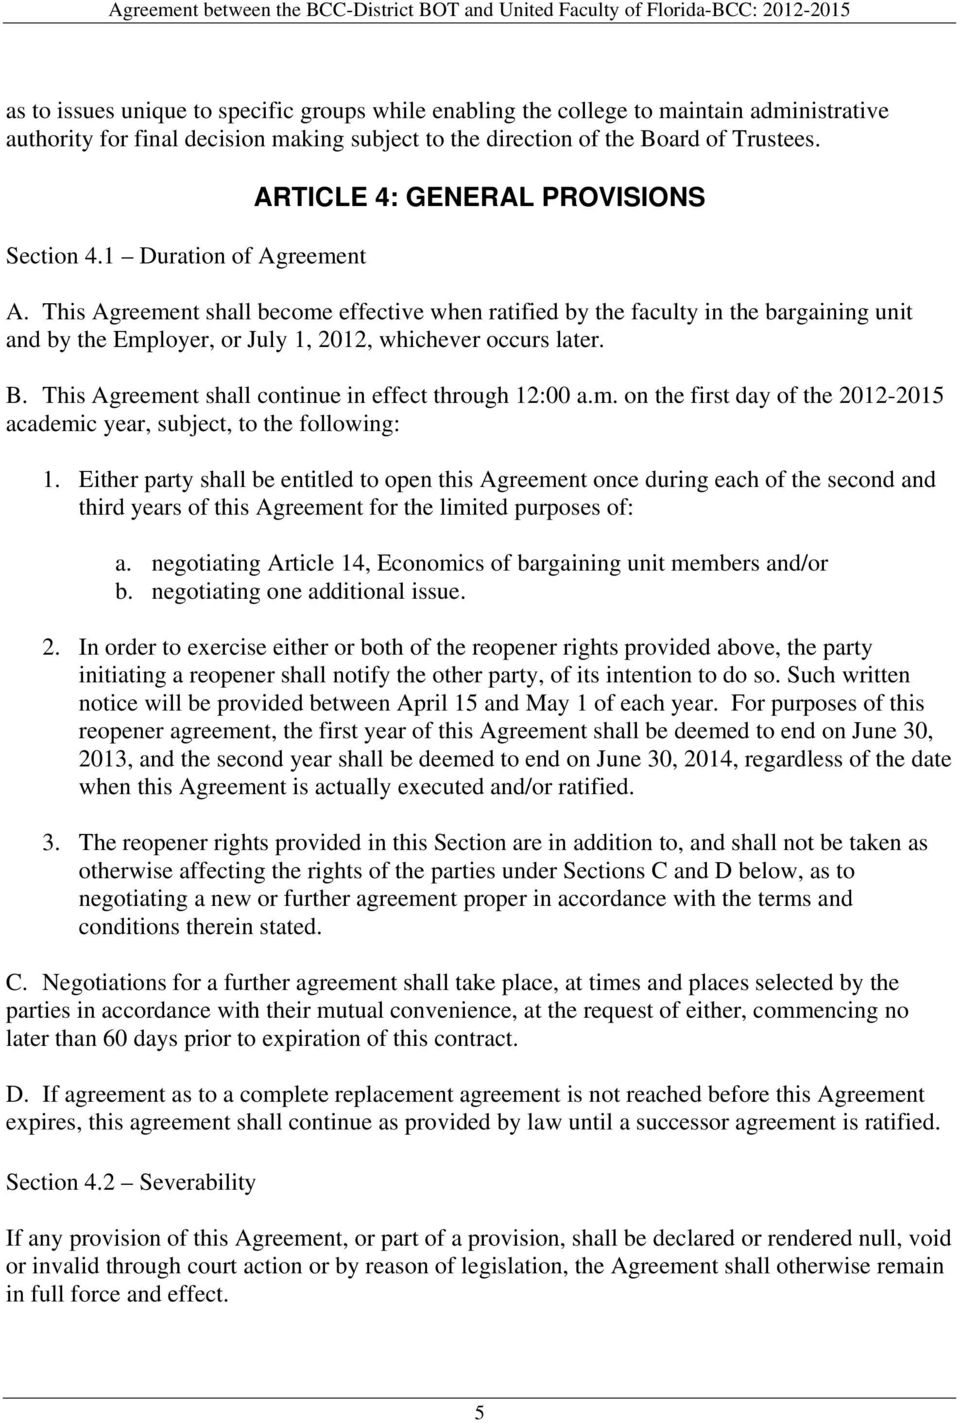 This Agreement shall become effective when ratified by the faculty in the bargaining unit and by the Employer, or July 1, 2012, whichever occurs later. B.